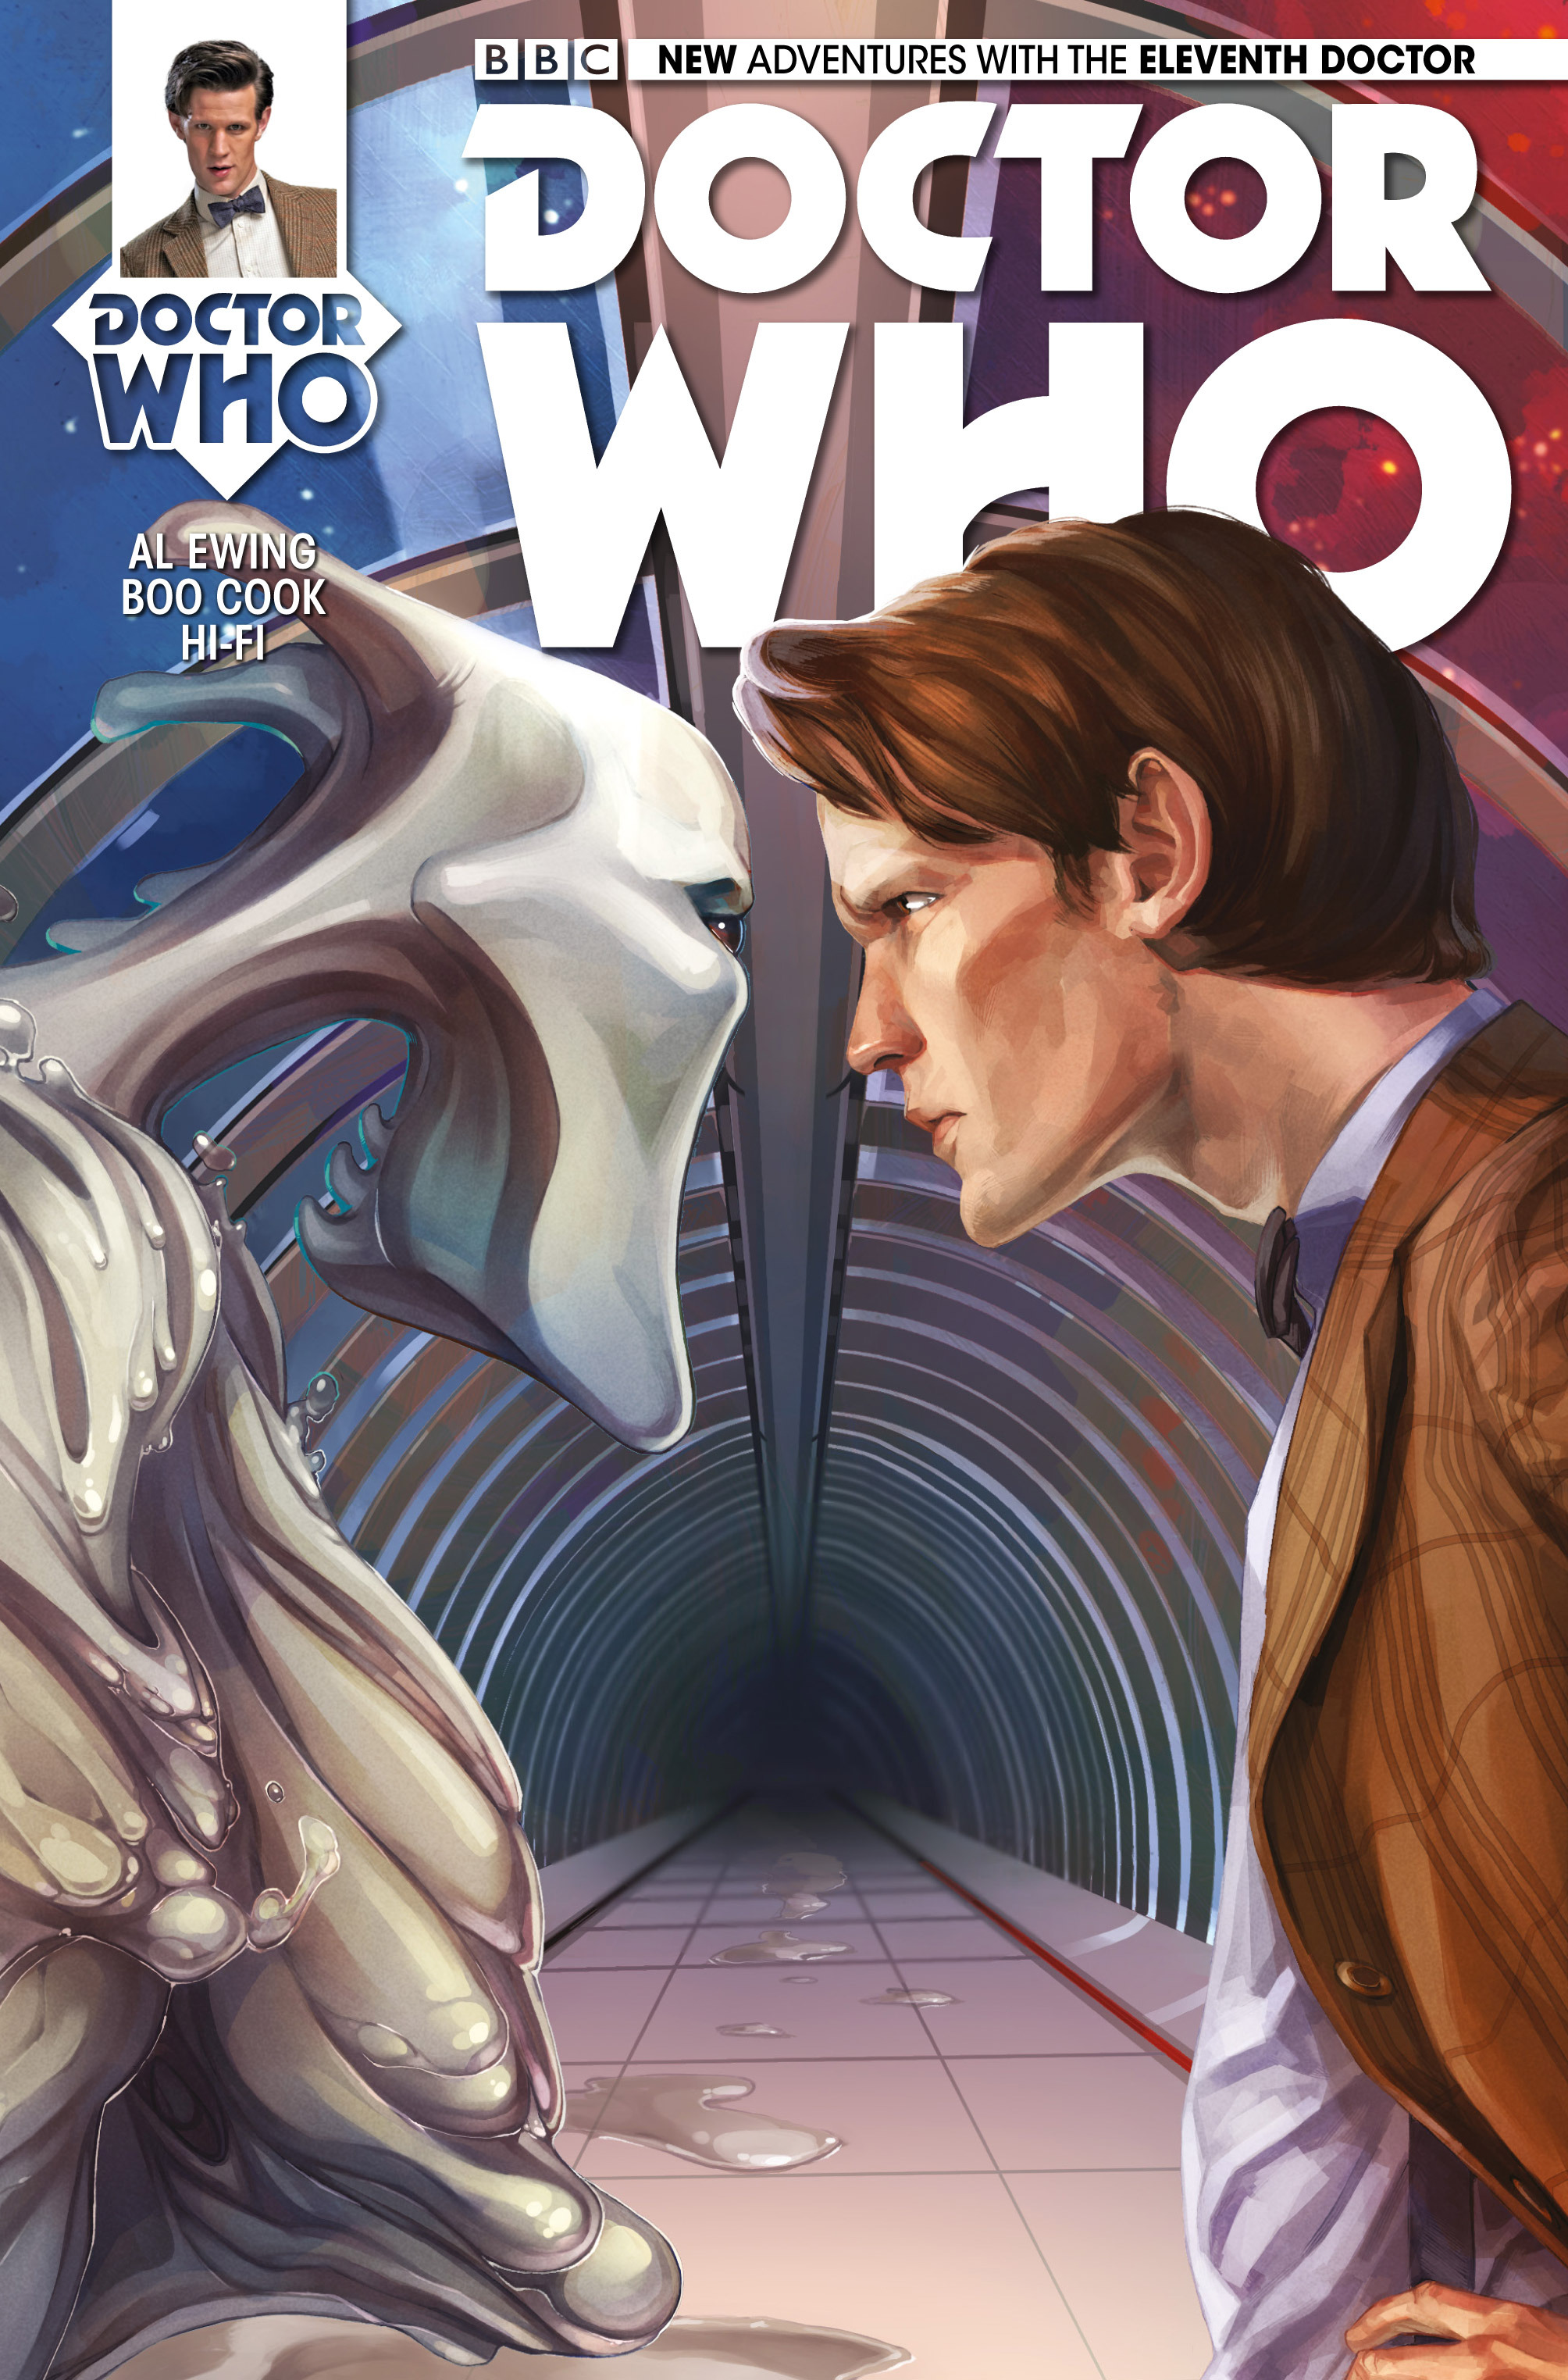 Doctor Who: The Eleventh Doctor 5 Page 1